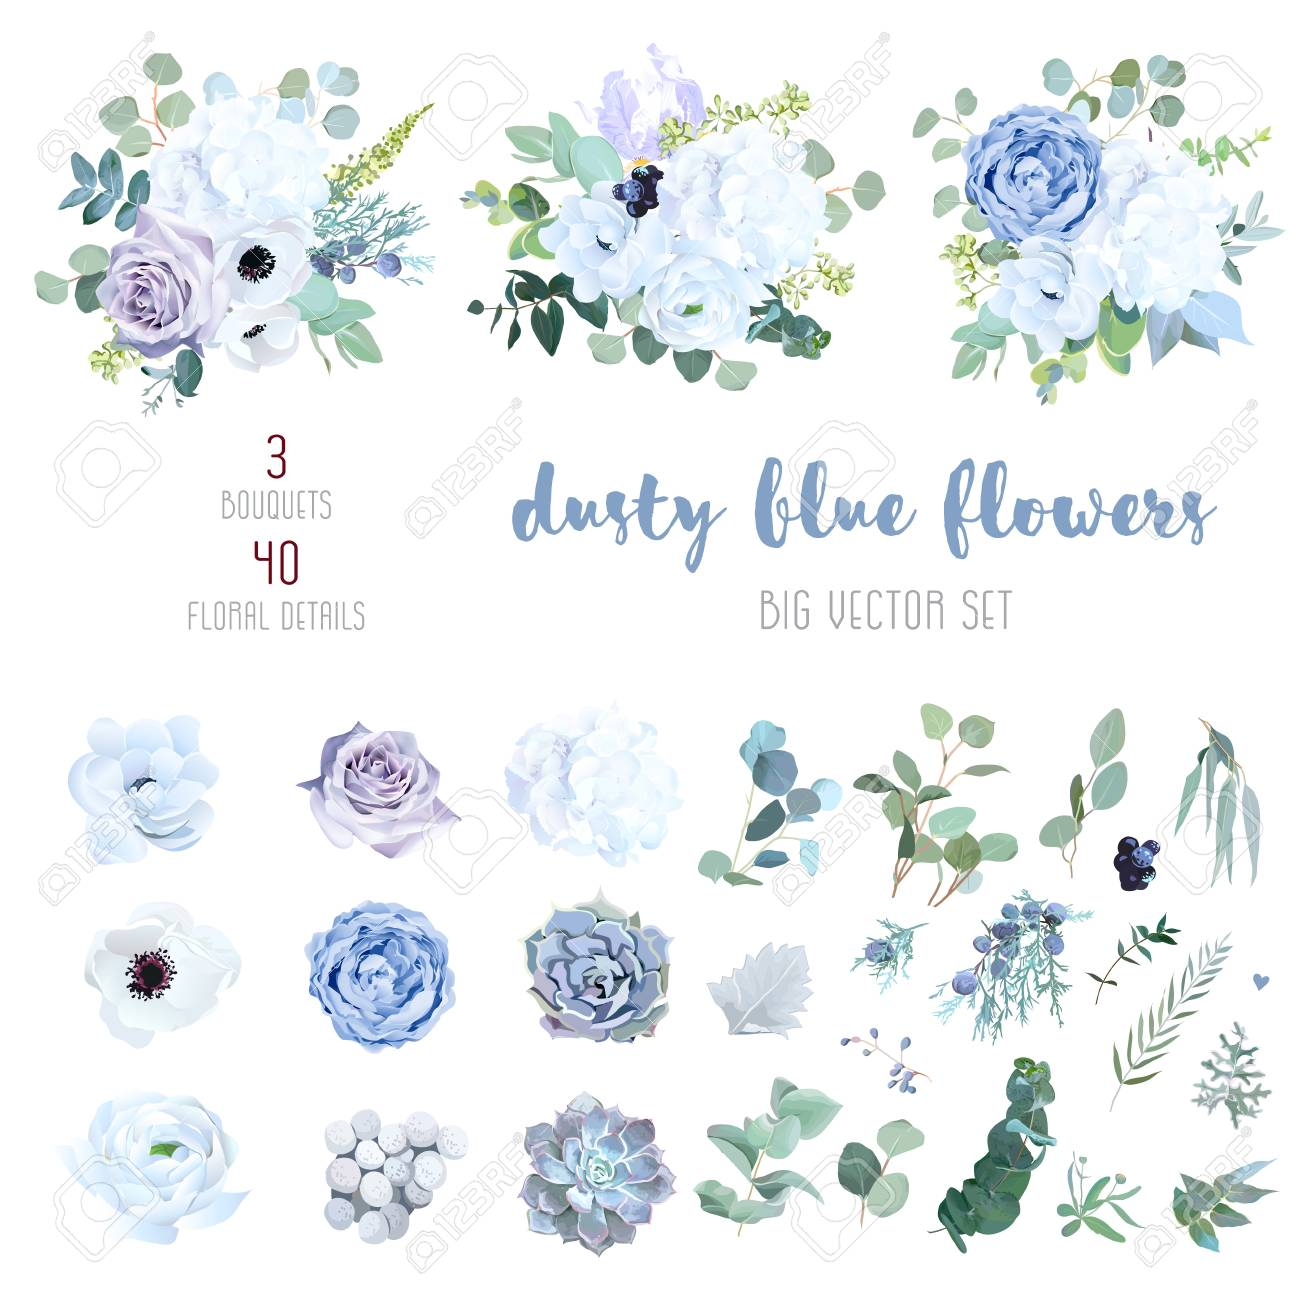 Dusty Blue Pale Purple Rose White Hydrangea Ranunculus Iris Royalty Free Cliparts Vectors And Stock Illustration Image 124803180